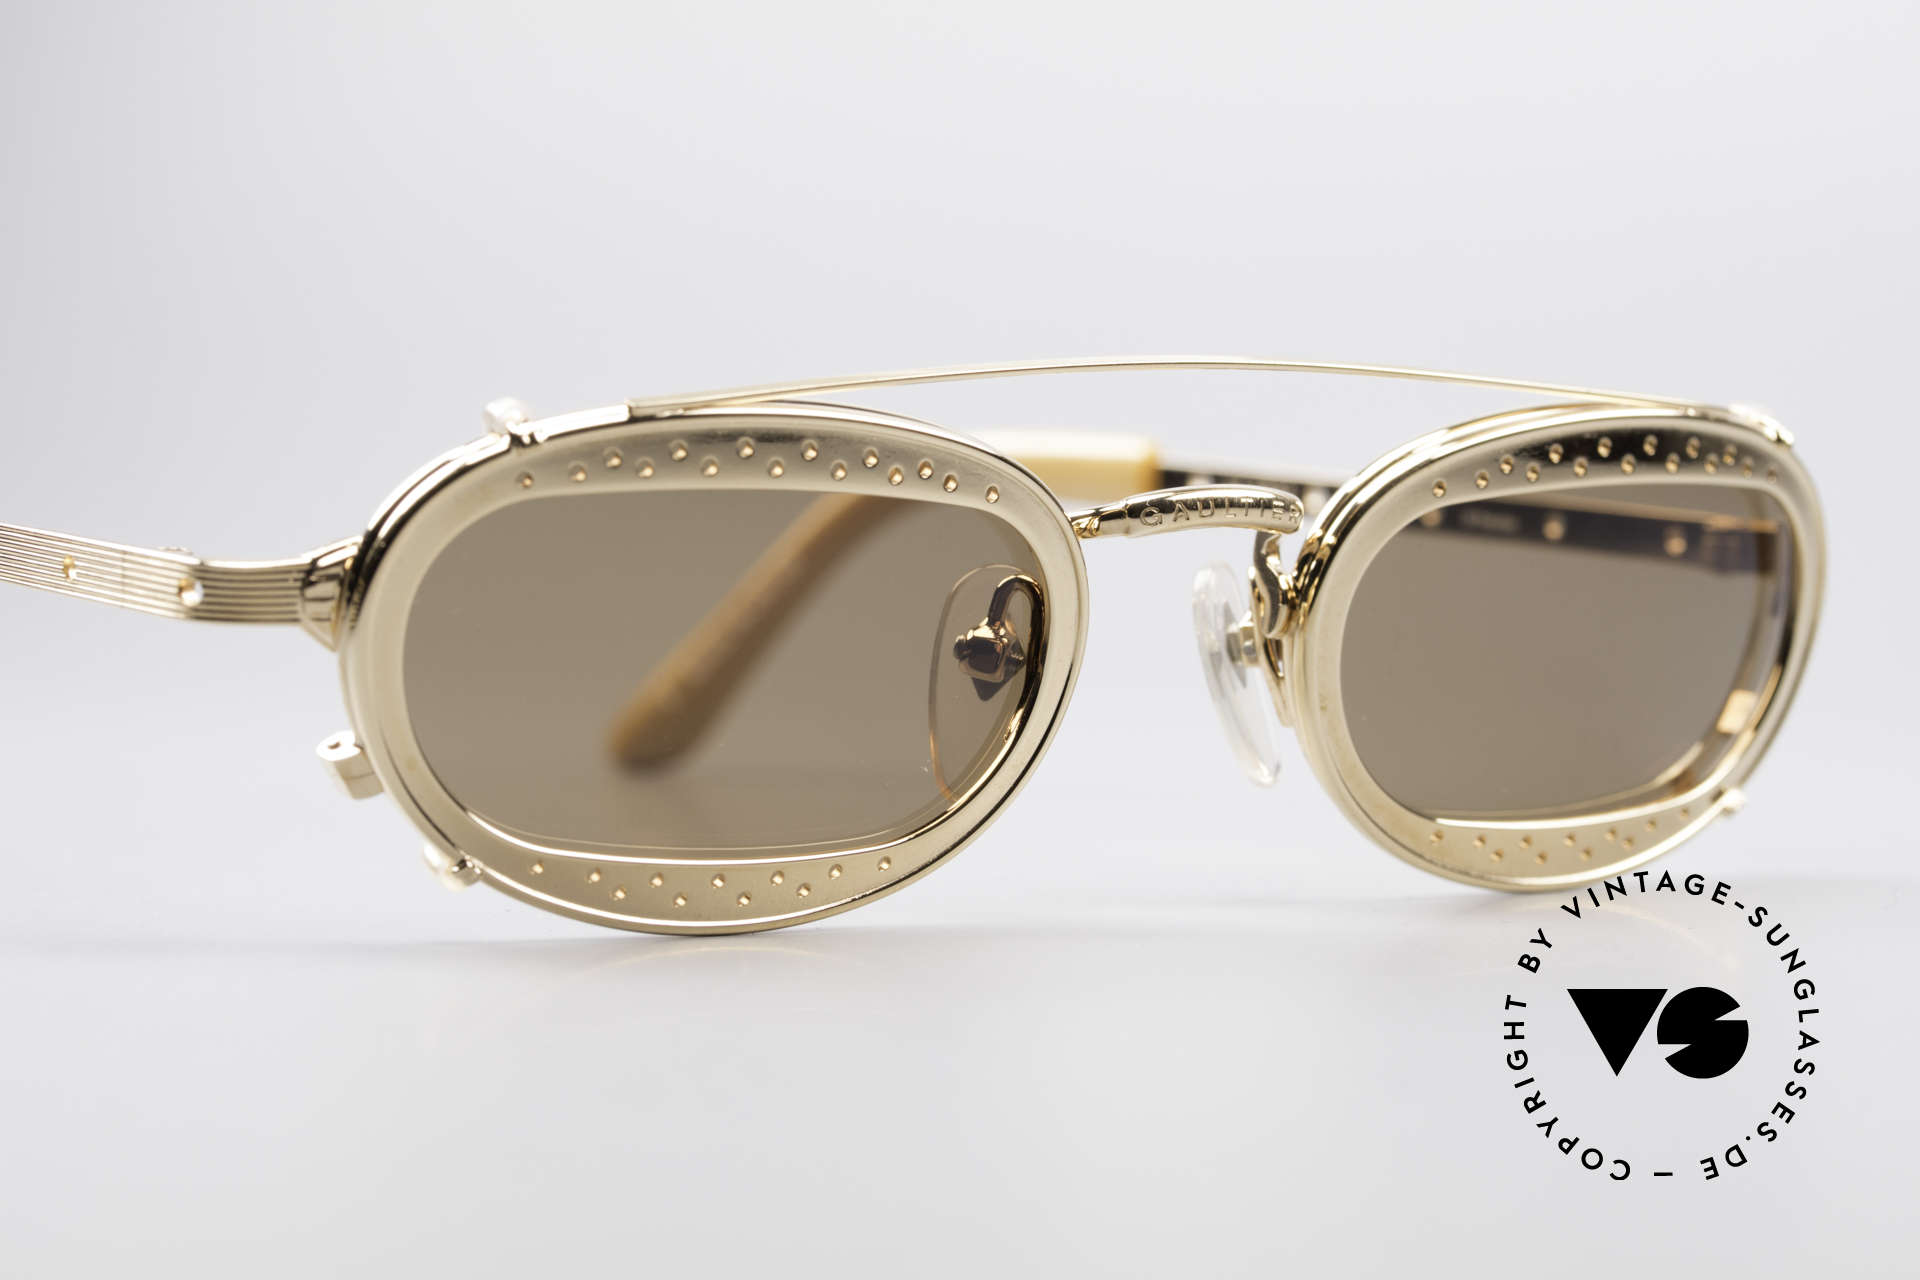 Jean Paul Gaultier 56-7116 Limited Edition Vintage Brille, einzigartiges Design & high-end Qualität (Japan made), Passend für Herren und Damen